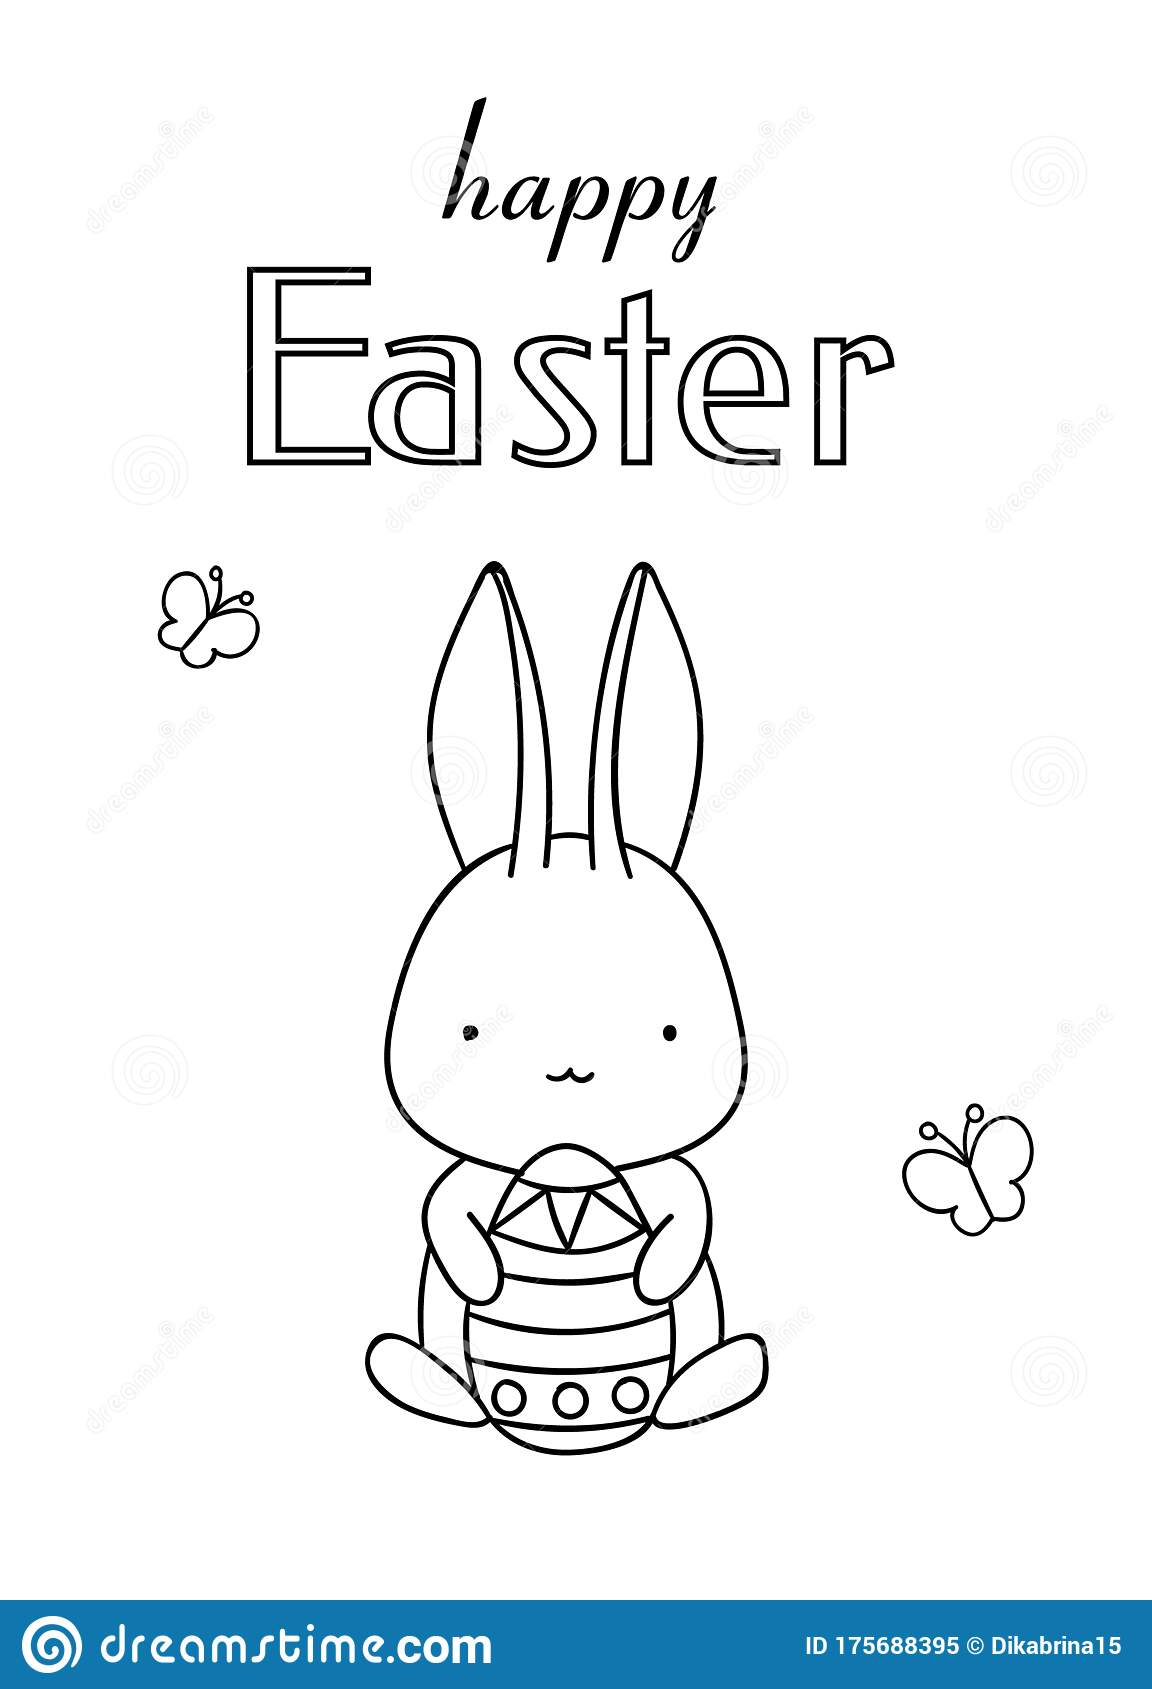 Coloring Pages, Black And White Cute Hand Drawn Bunny With ...